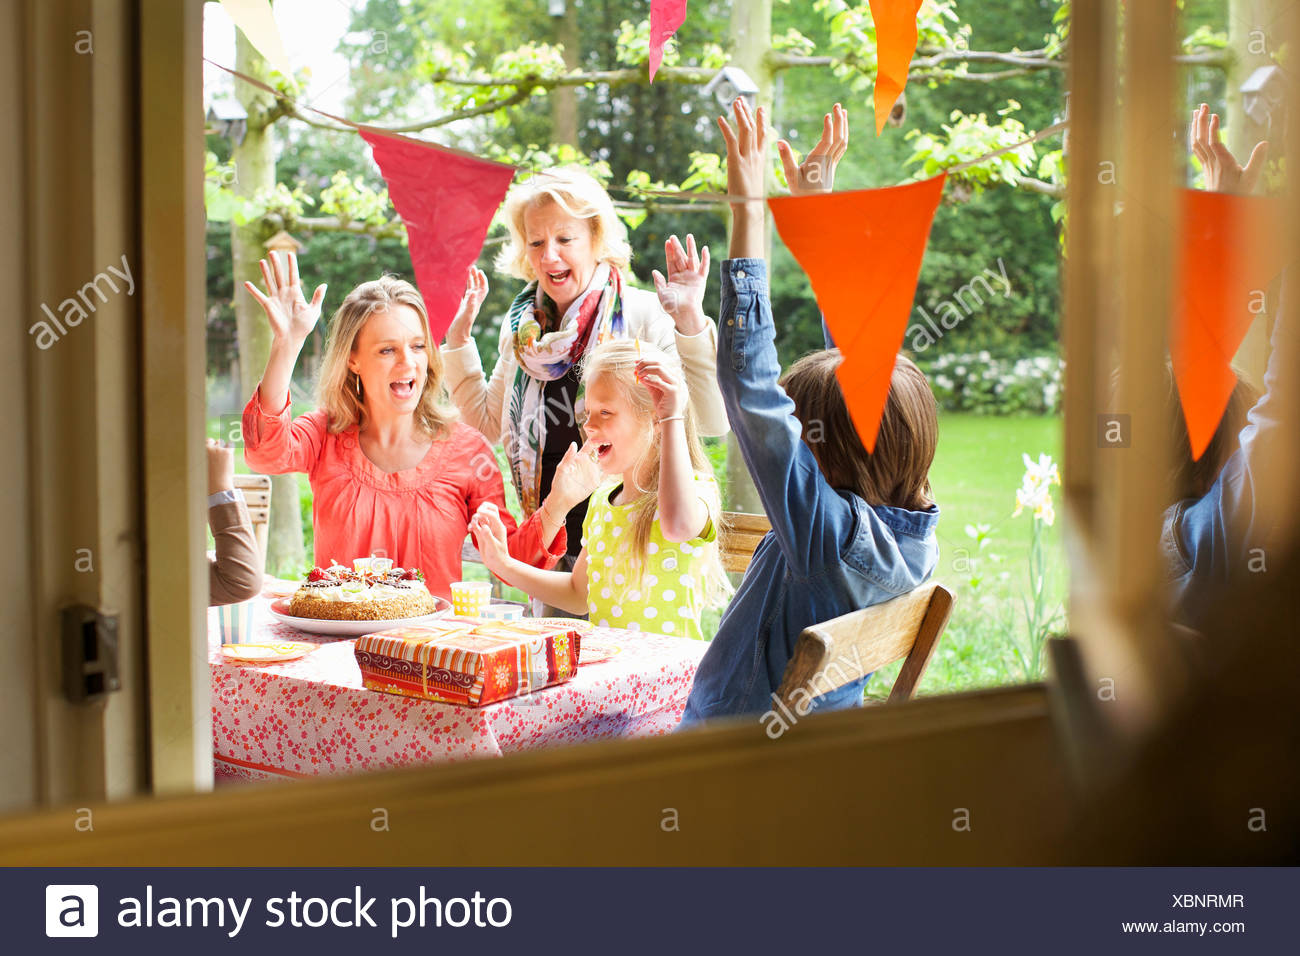 Family singing and cheering at birthday party - Stock Image